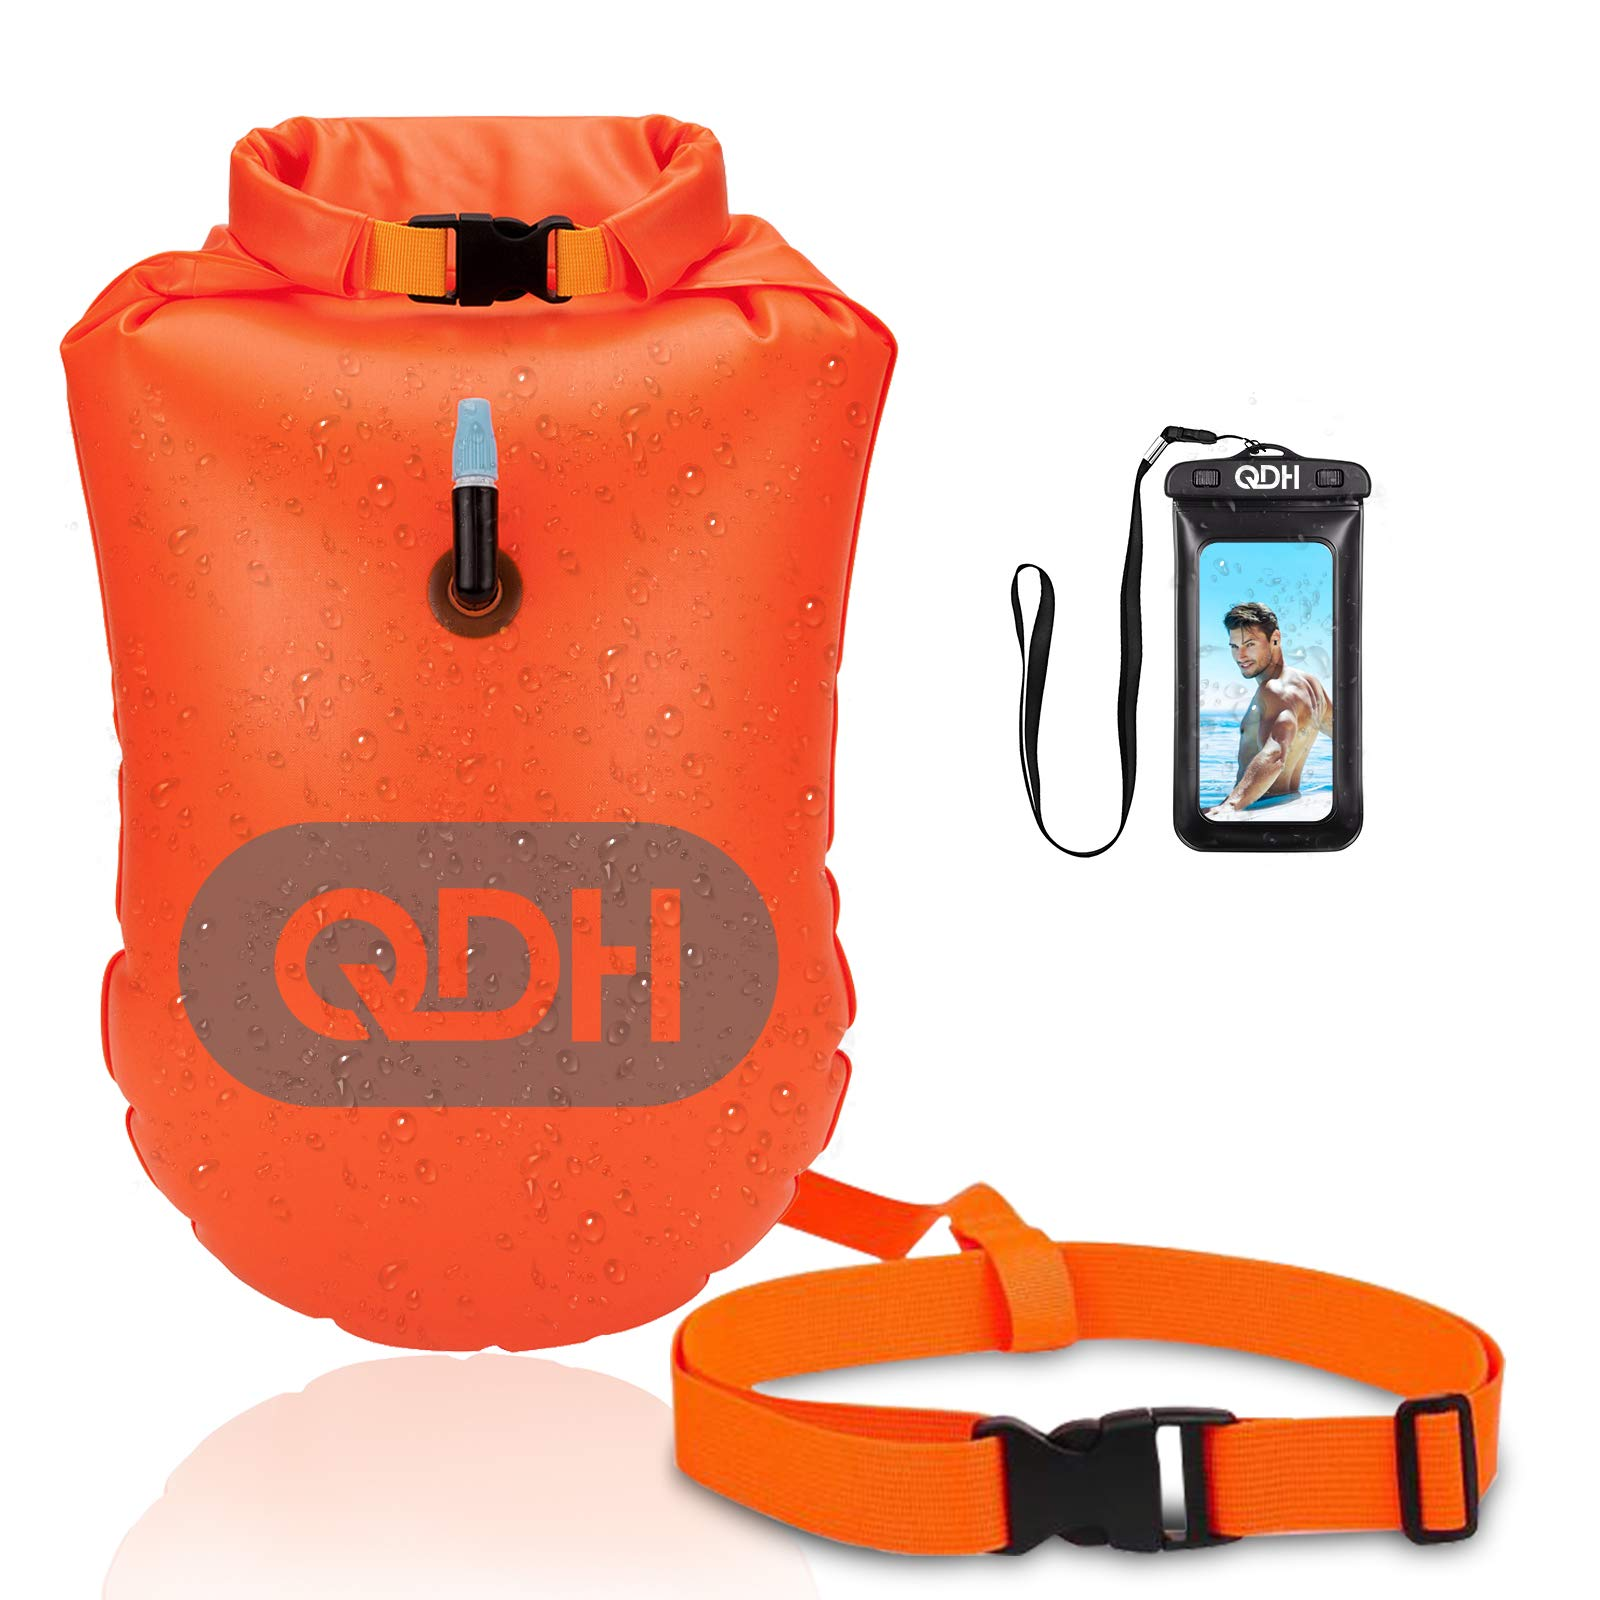 QDH Swim Buoy Swim Safety Float for Open Water and Triathlon for Safer Swim Training Floating Dry Bags Waterproof Roll Top Sack Keeps Gear Dry for Kayaking, Rafting, Boating, Swimming, Hiking, Beach